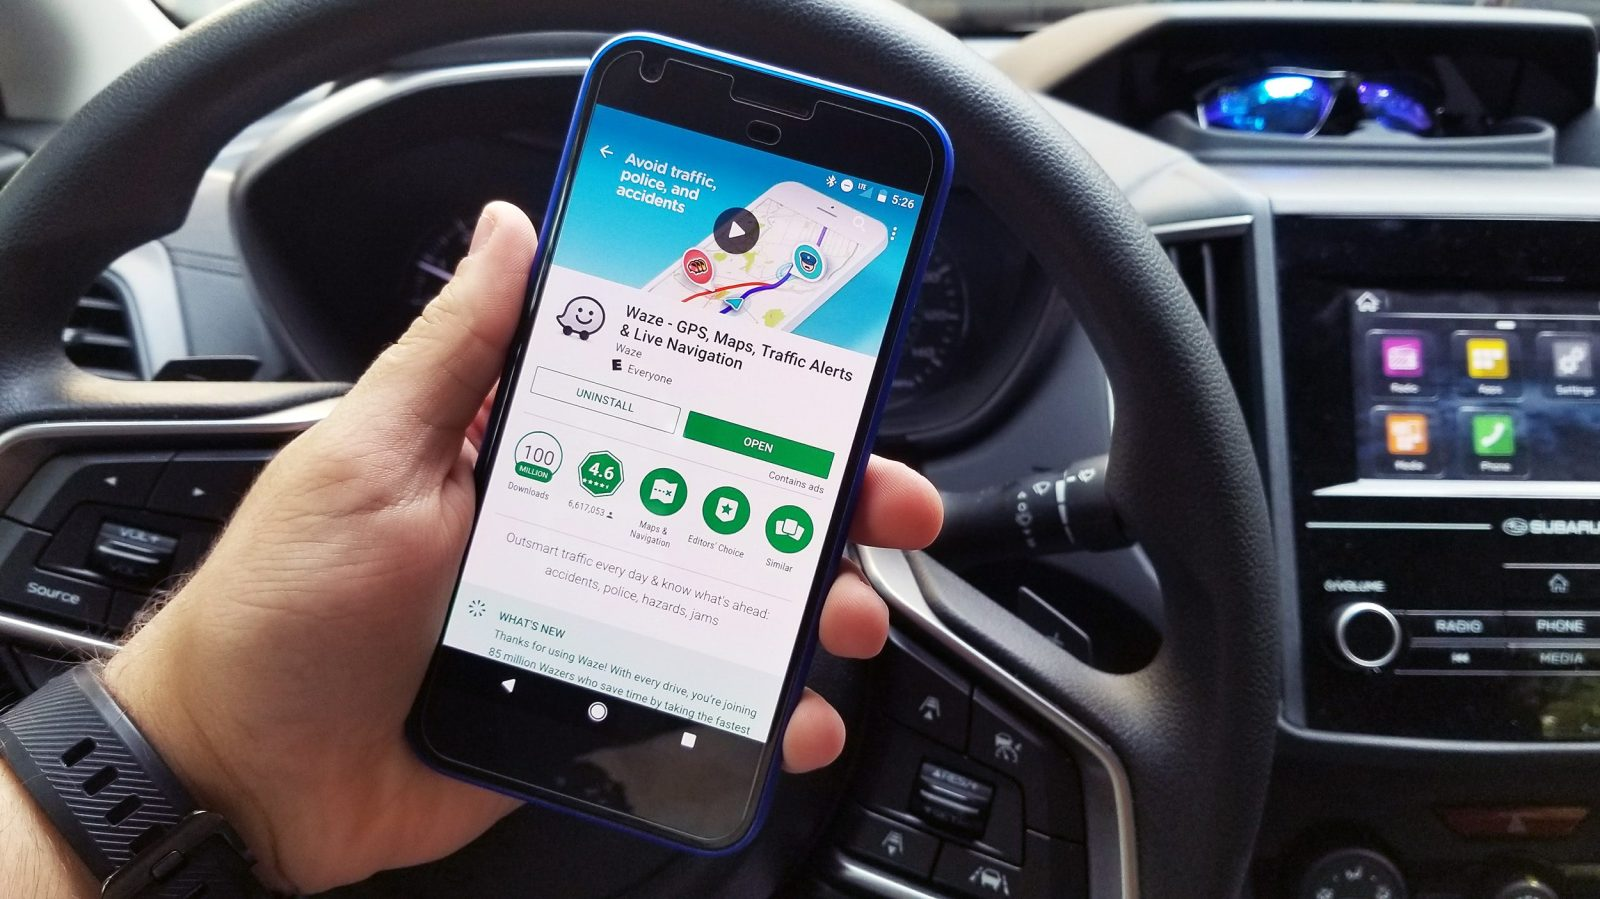 NYPD demands Google's Waze stop revealing DWI stops - 9to5Google